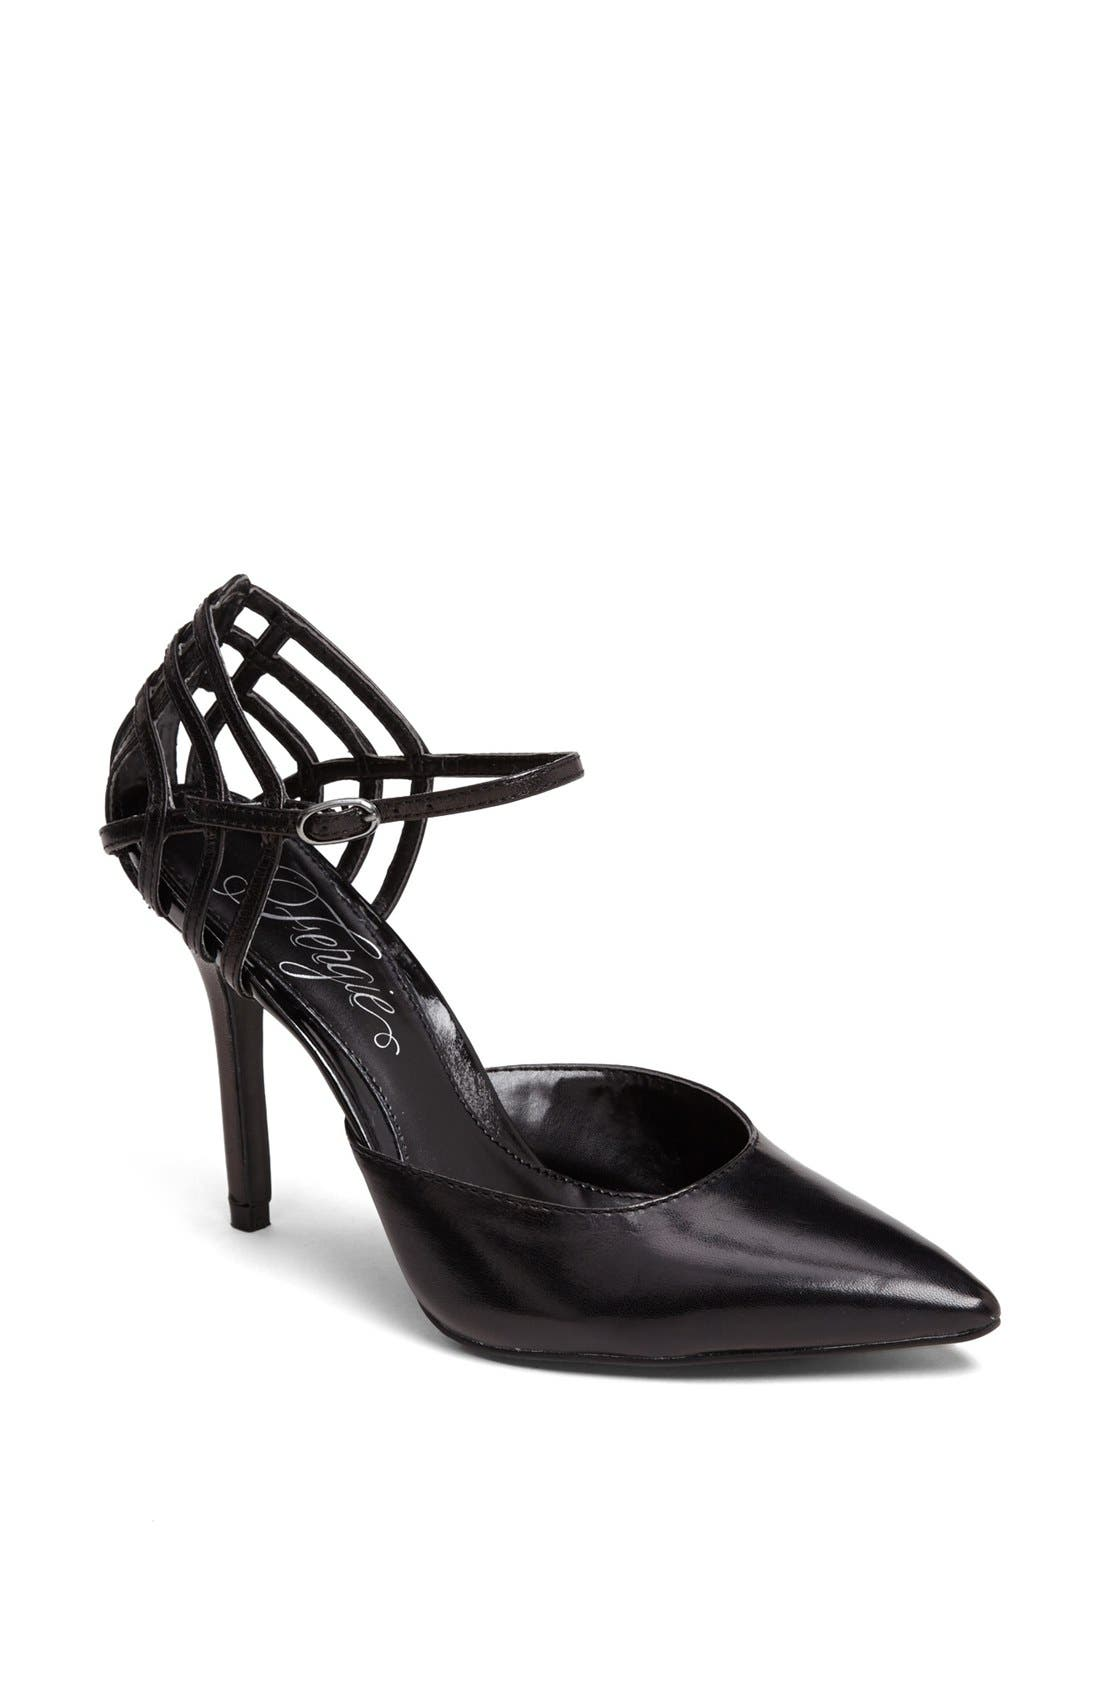 Alternate Image 1 Selected - Fergie 'Gardenia' Pump